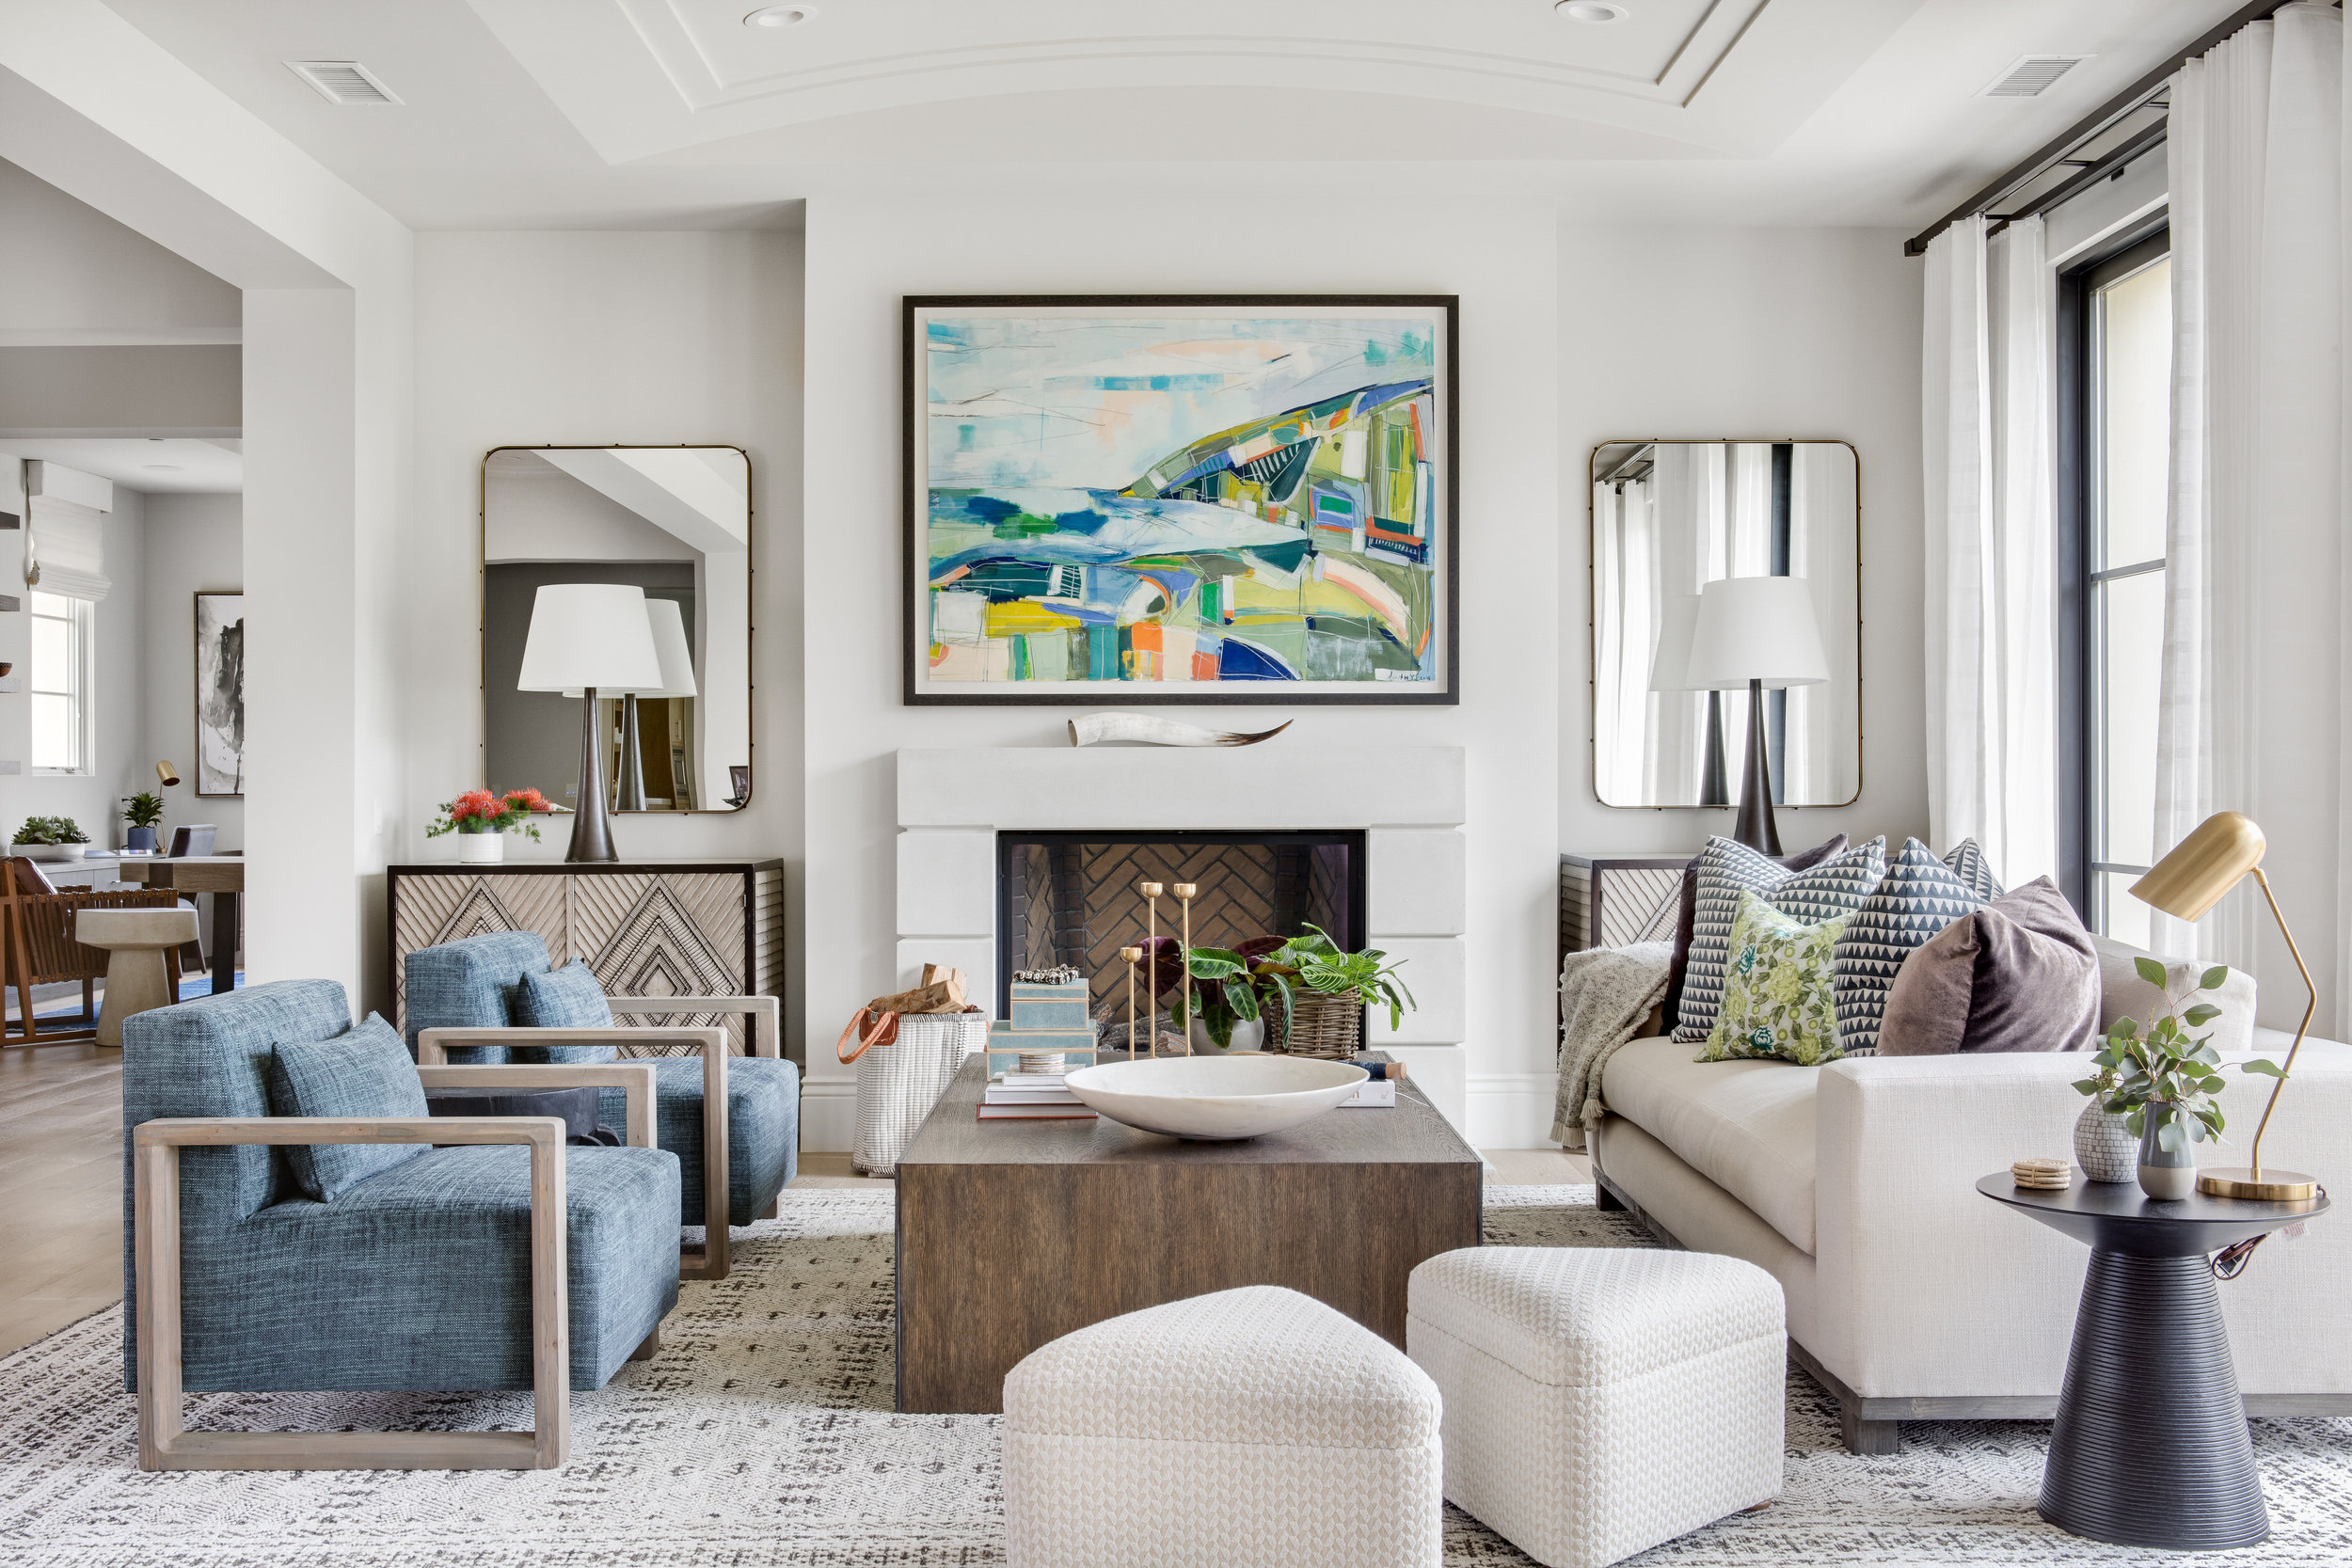 Denise Morrison Interiors_Shes A Super Chic_5351.jpg